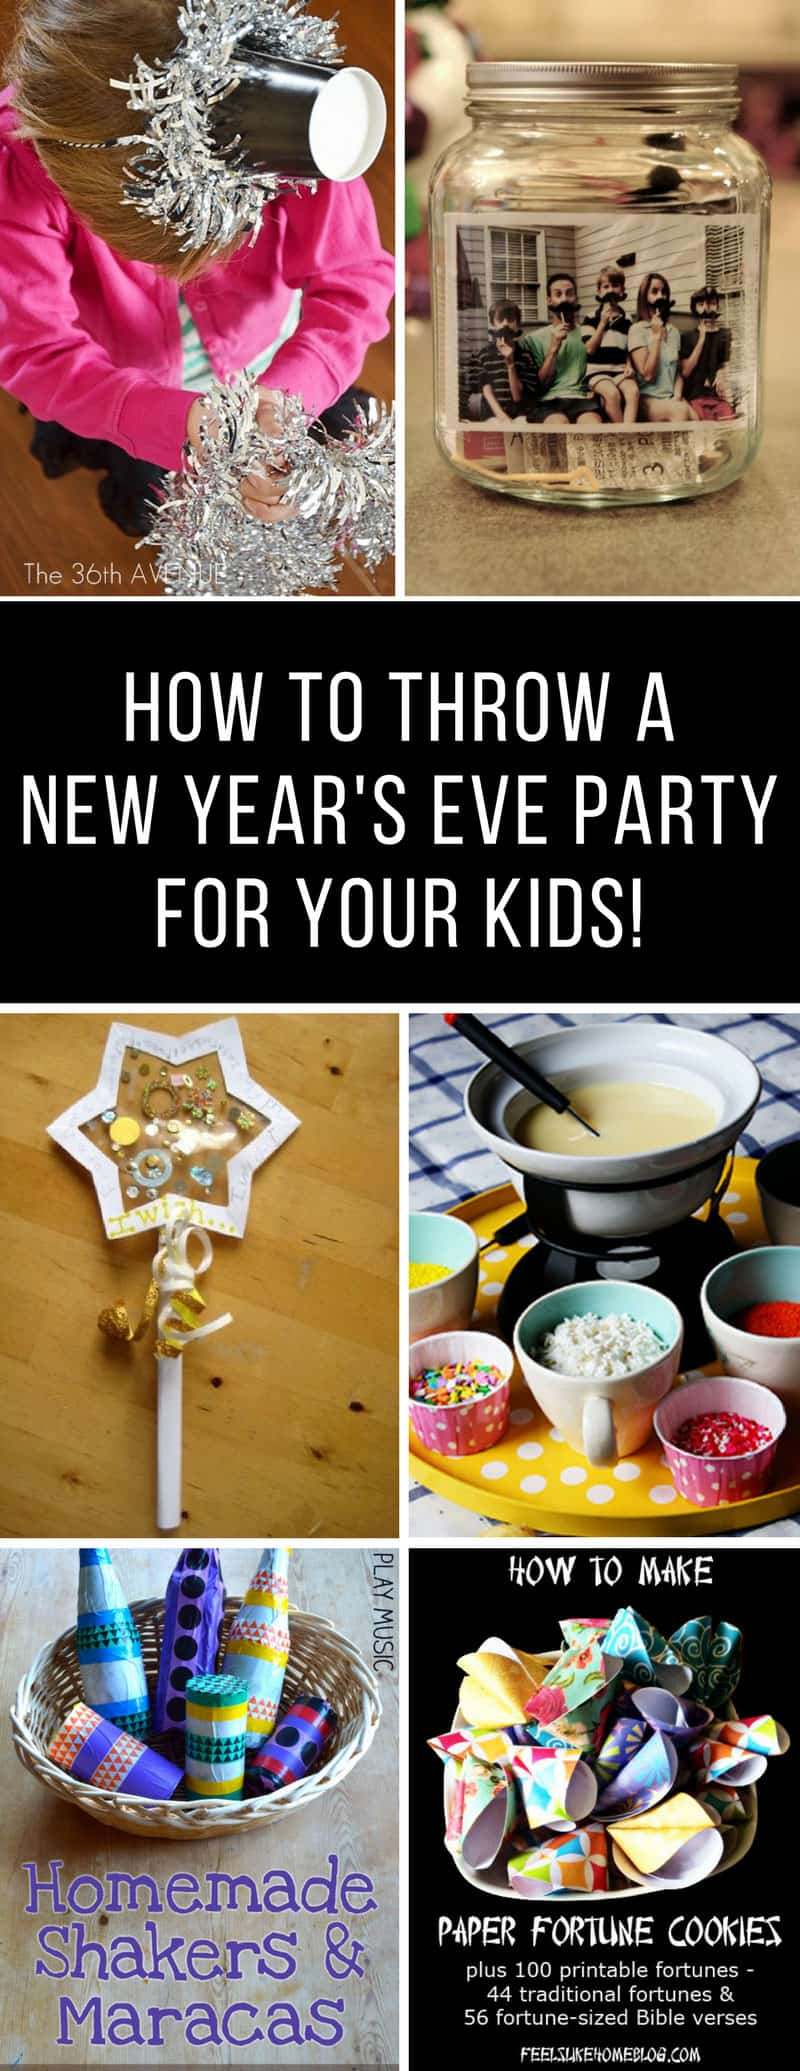 New Years Eve Party for Kids - Don't let the kids miss out on the fun - they can have their party counting down to noon instead of Midnight! #newyear #newyearparty